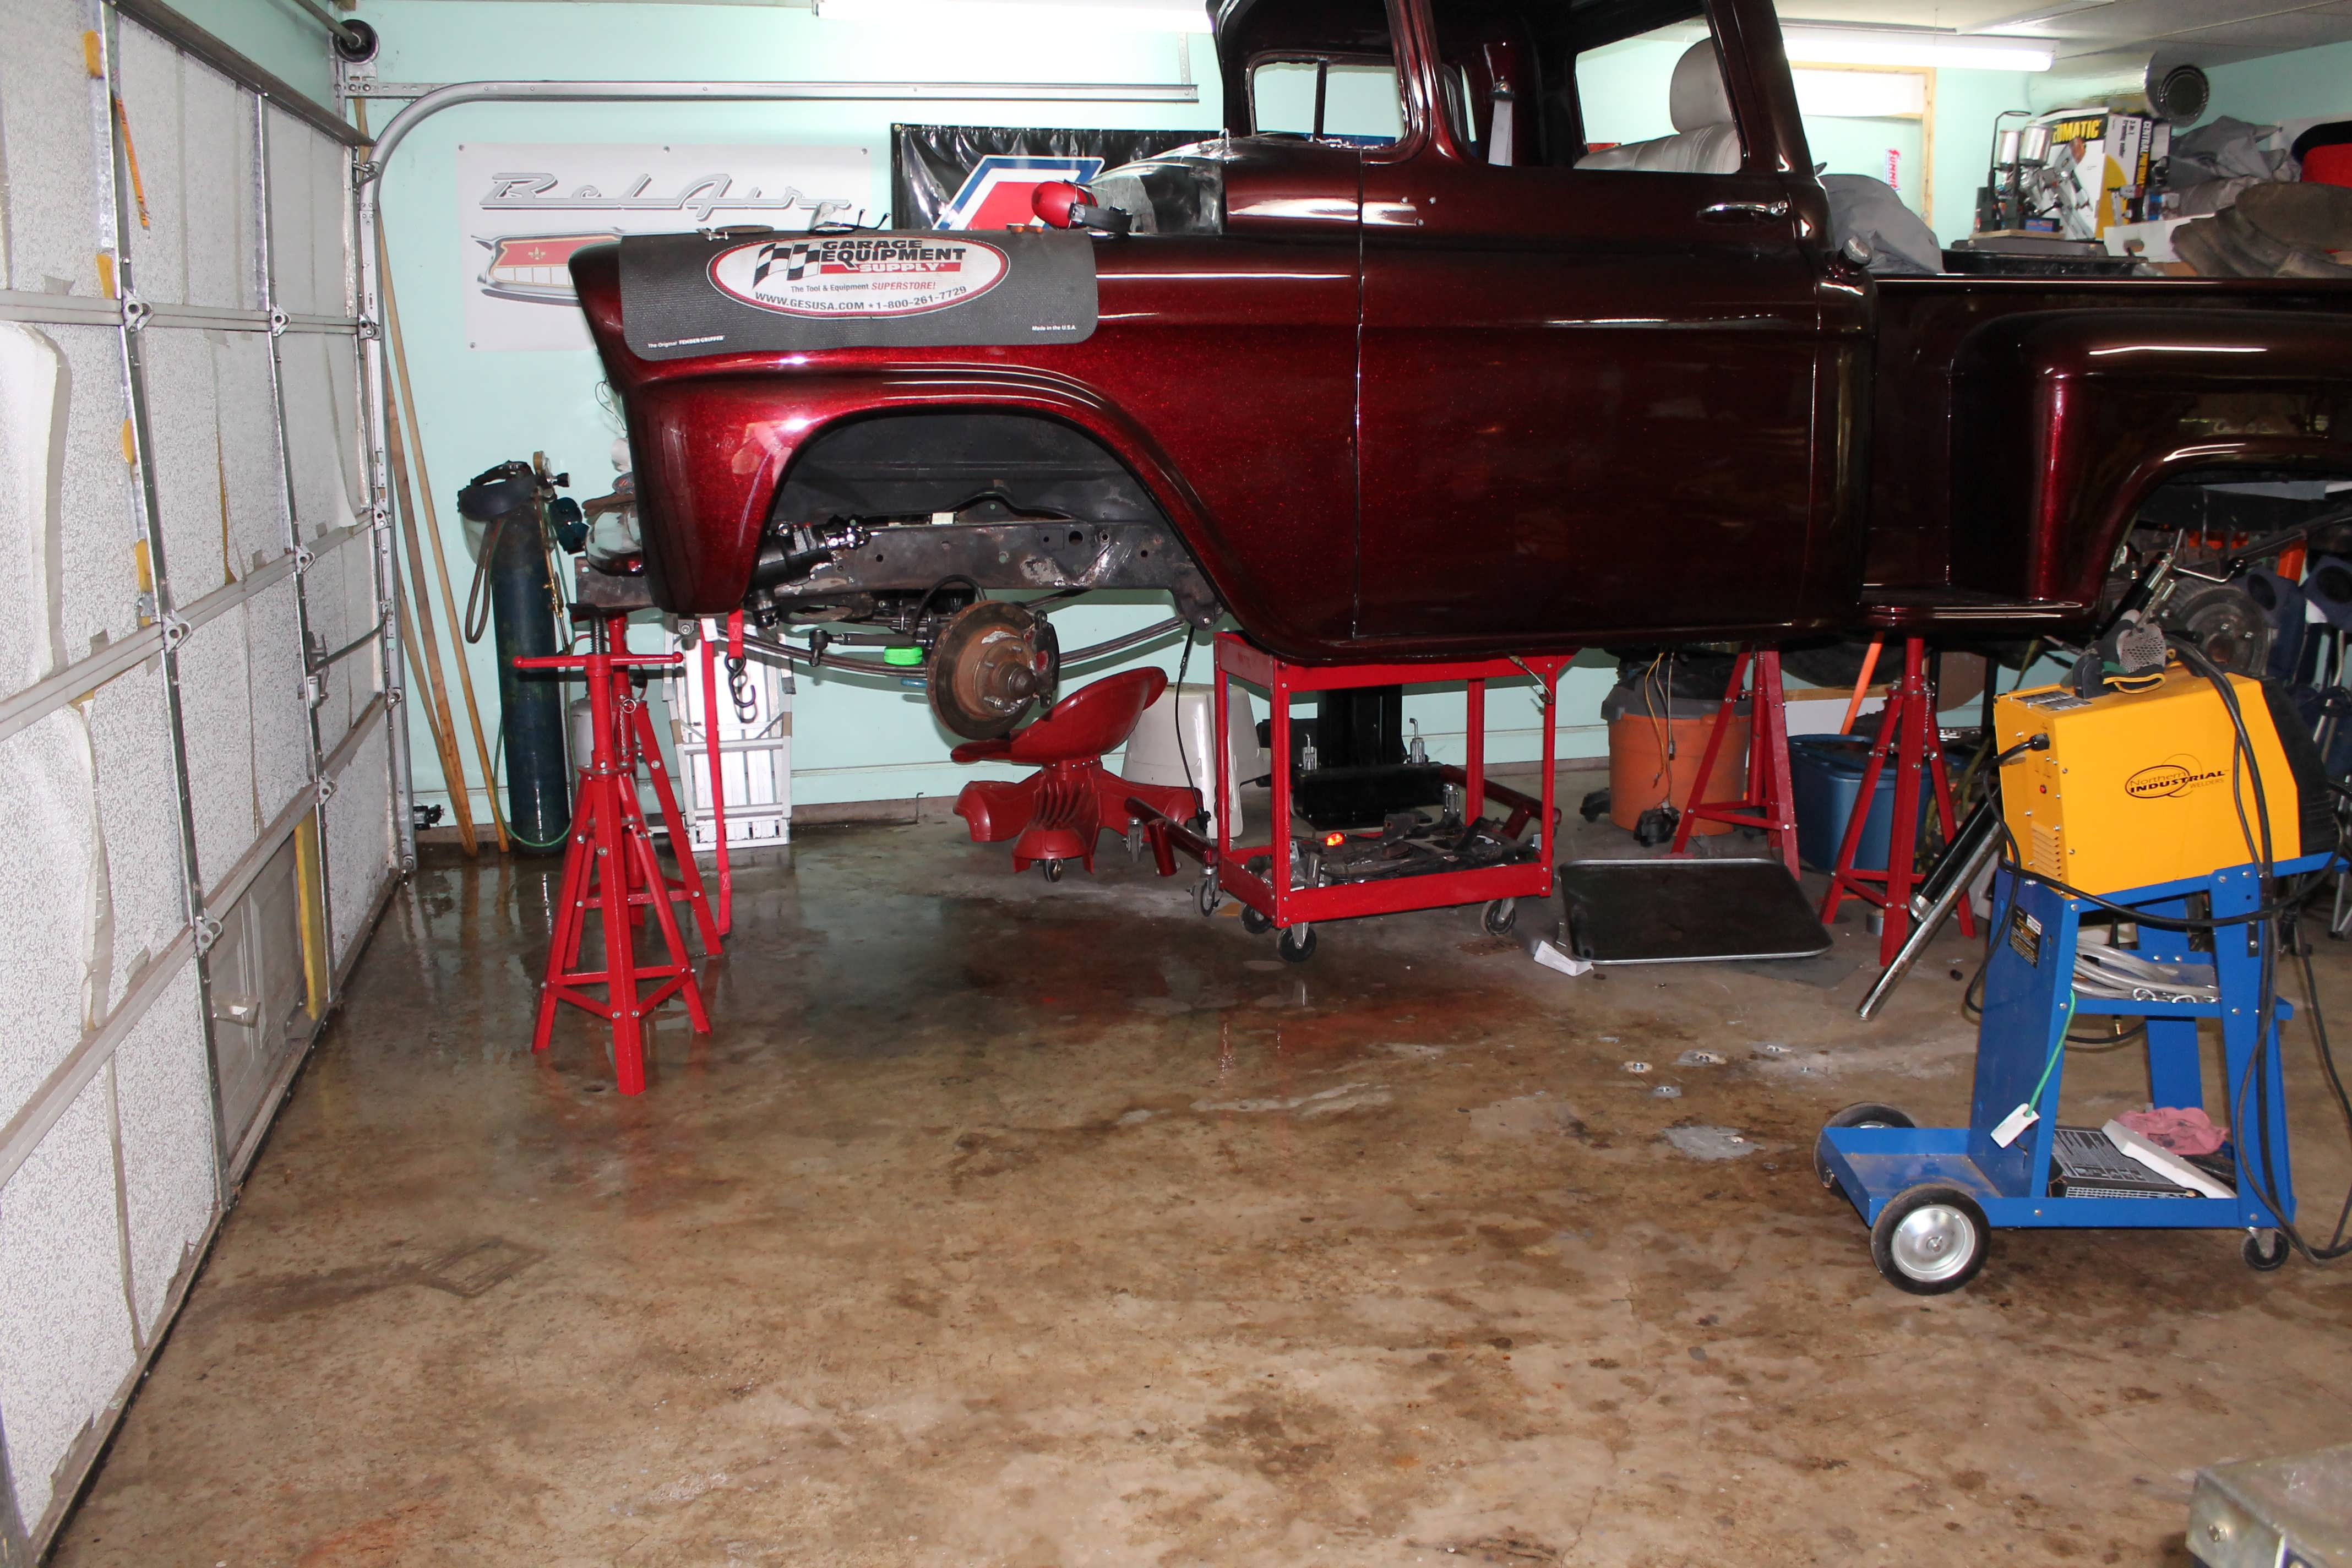 59 Chevy Truck Power Steering Classic Cars And Tools Bolt Conversion Kit Pump The Original Gear Obviously Did Job But Today Is Necessary At Least For Me It I Drove My Down Street